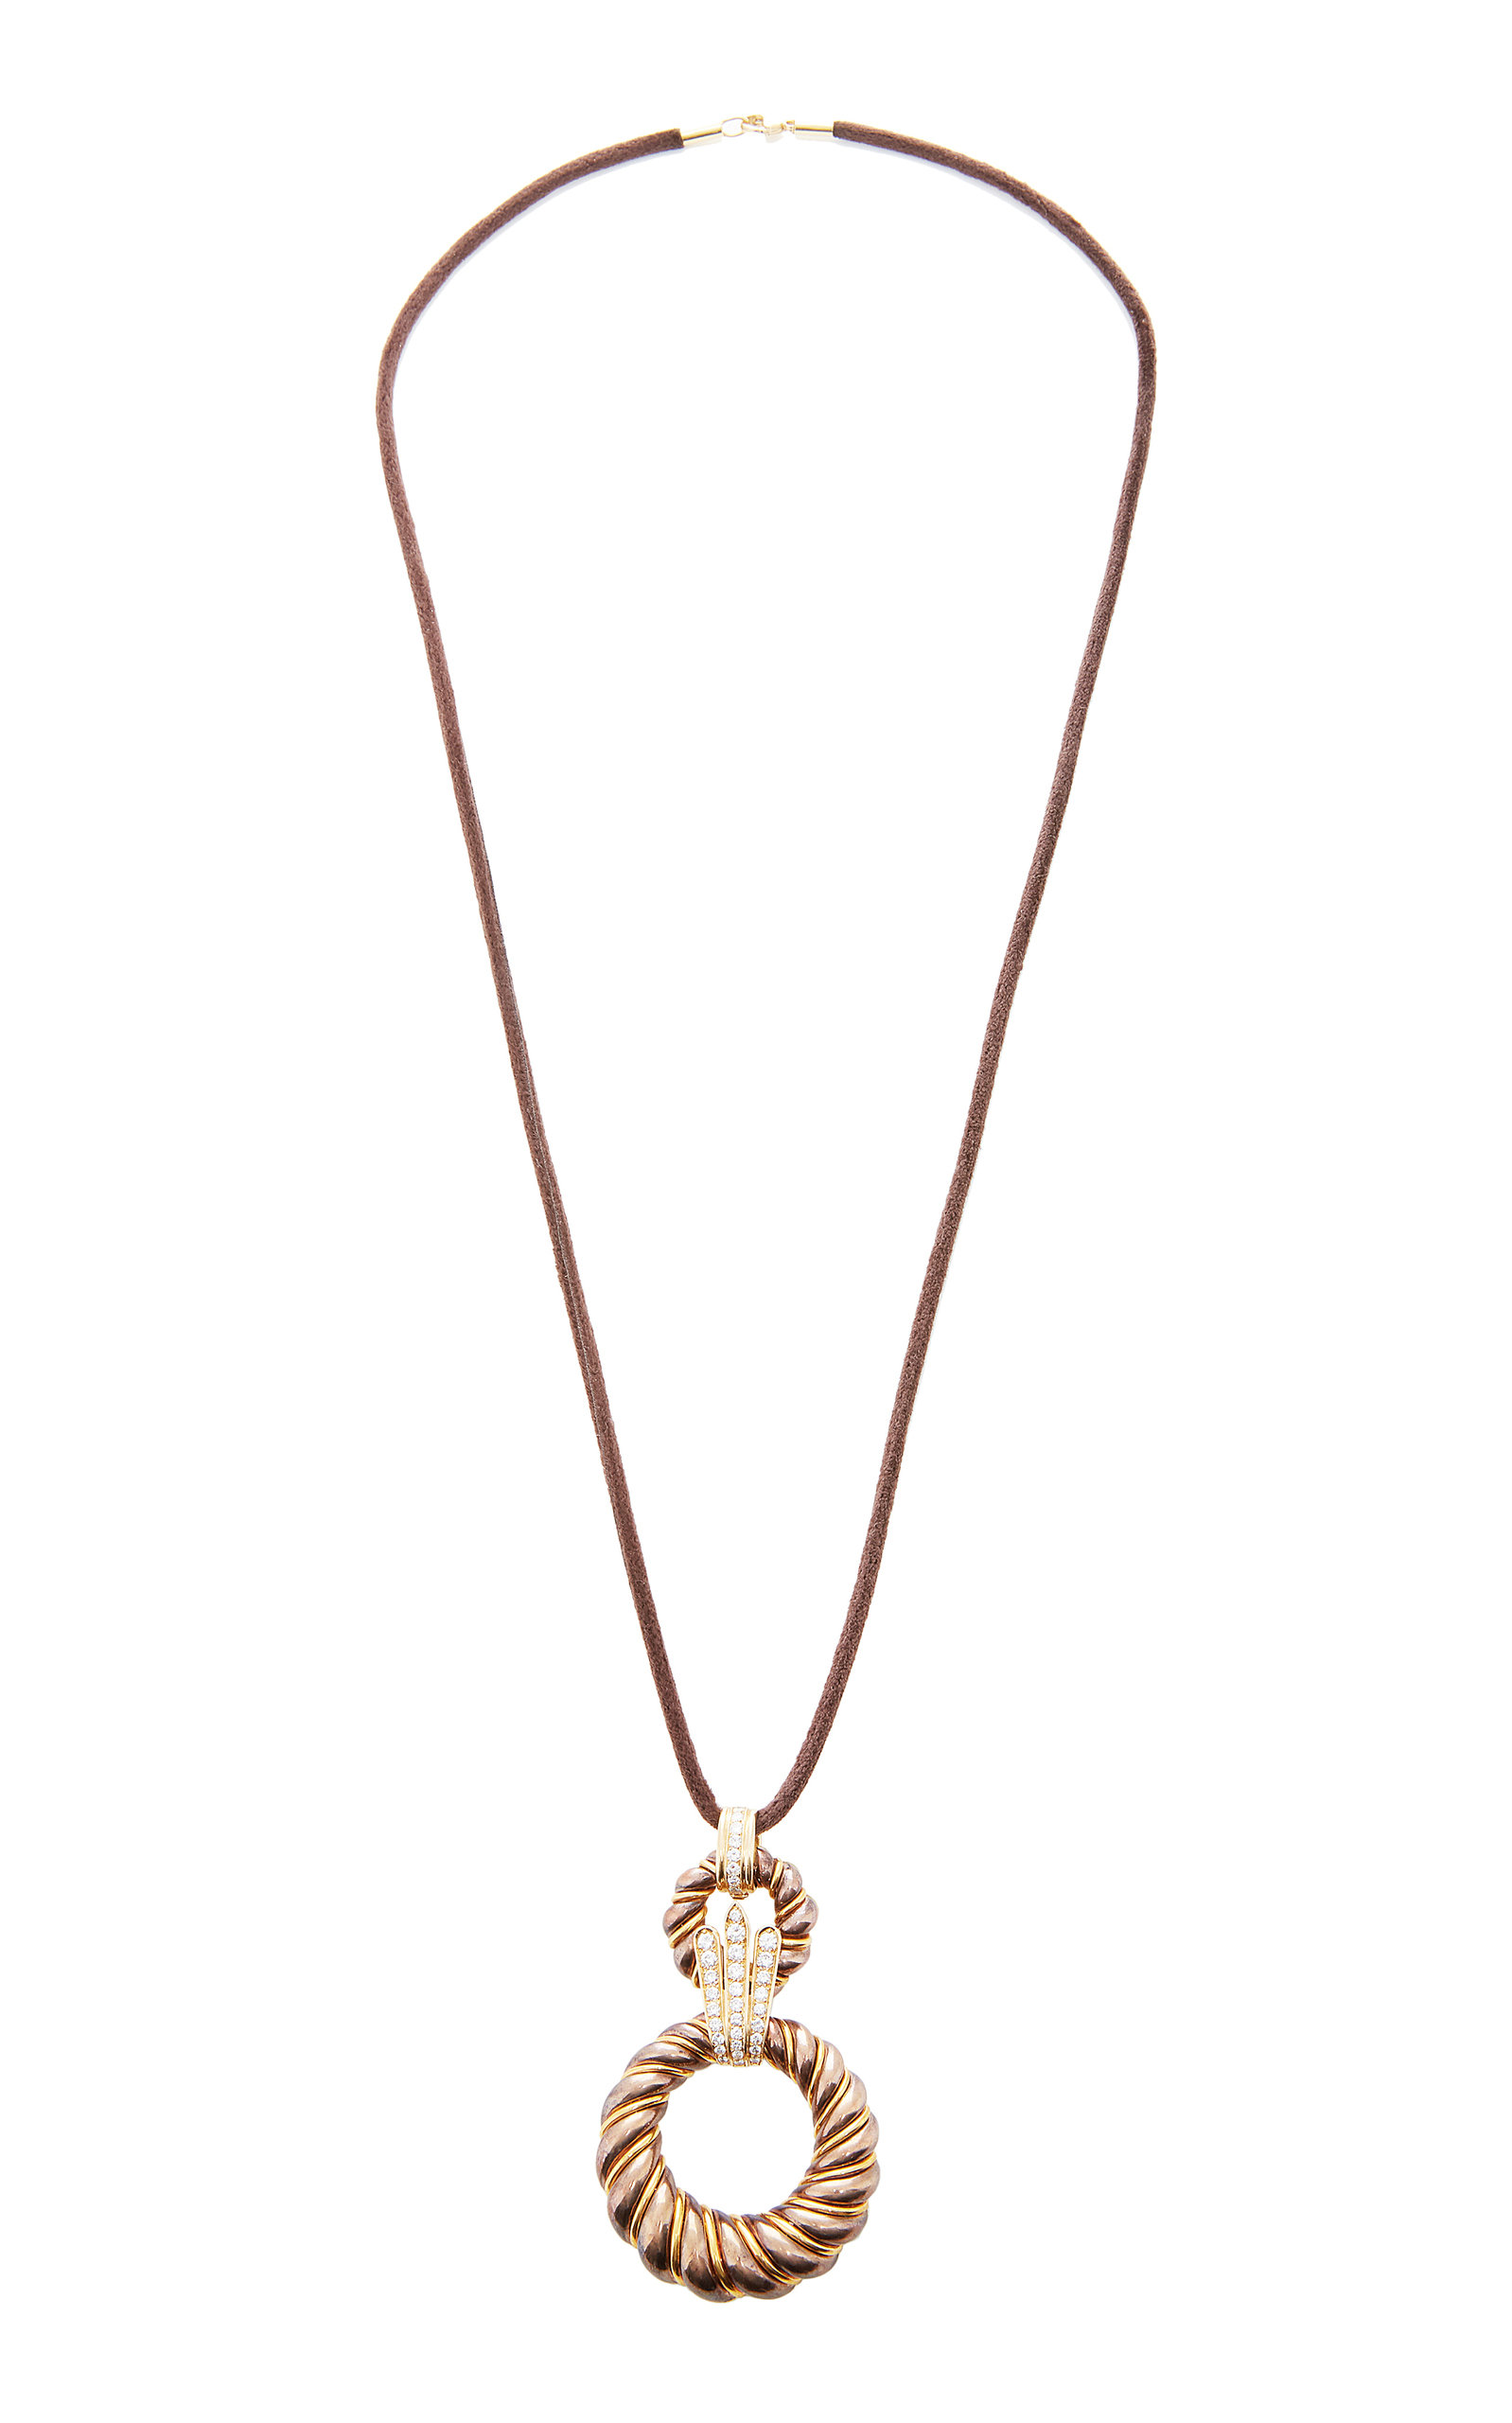 LIMITED EDITION CHAUMET A DIAMOND BRONZE AND 18 KARAT GOLD PENDANT BY CHAUMET C.1970